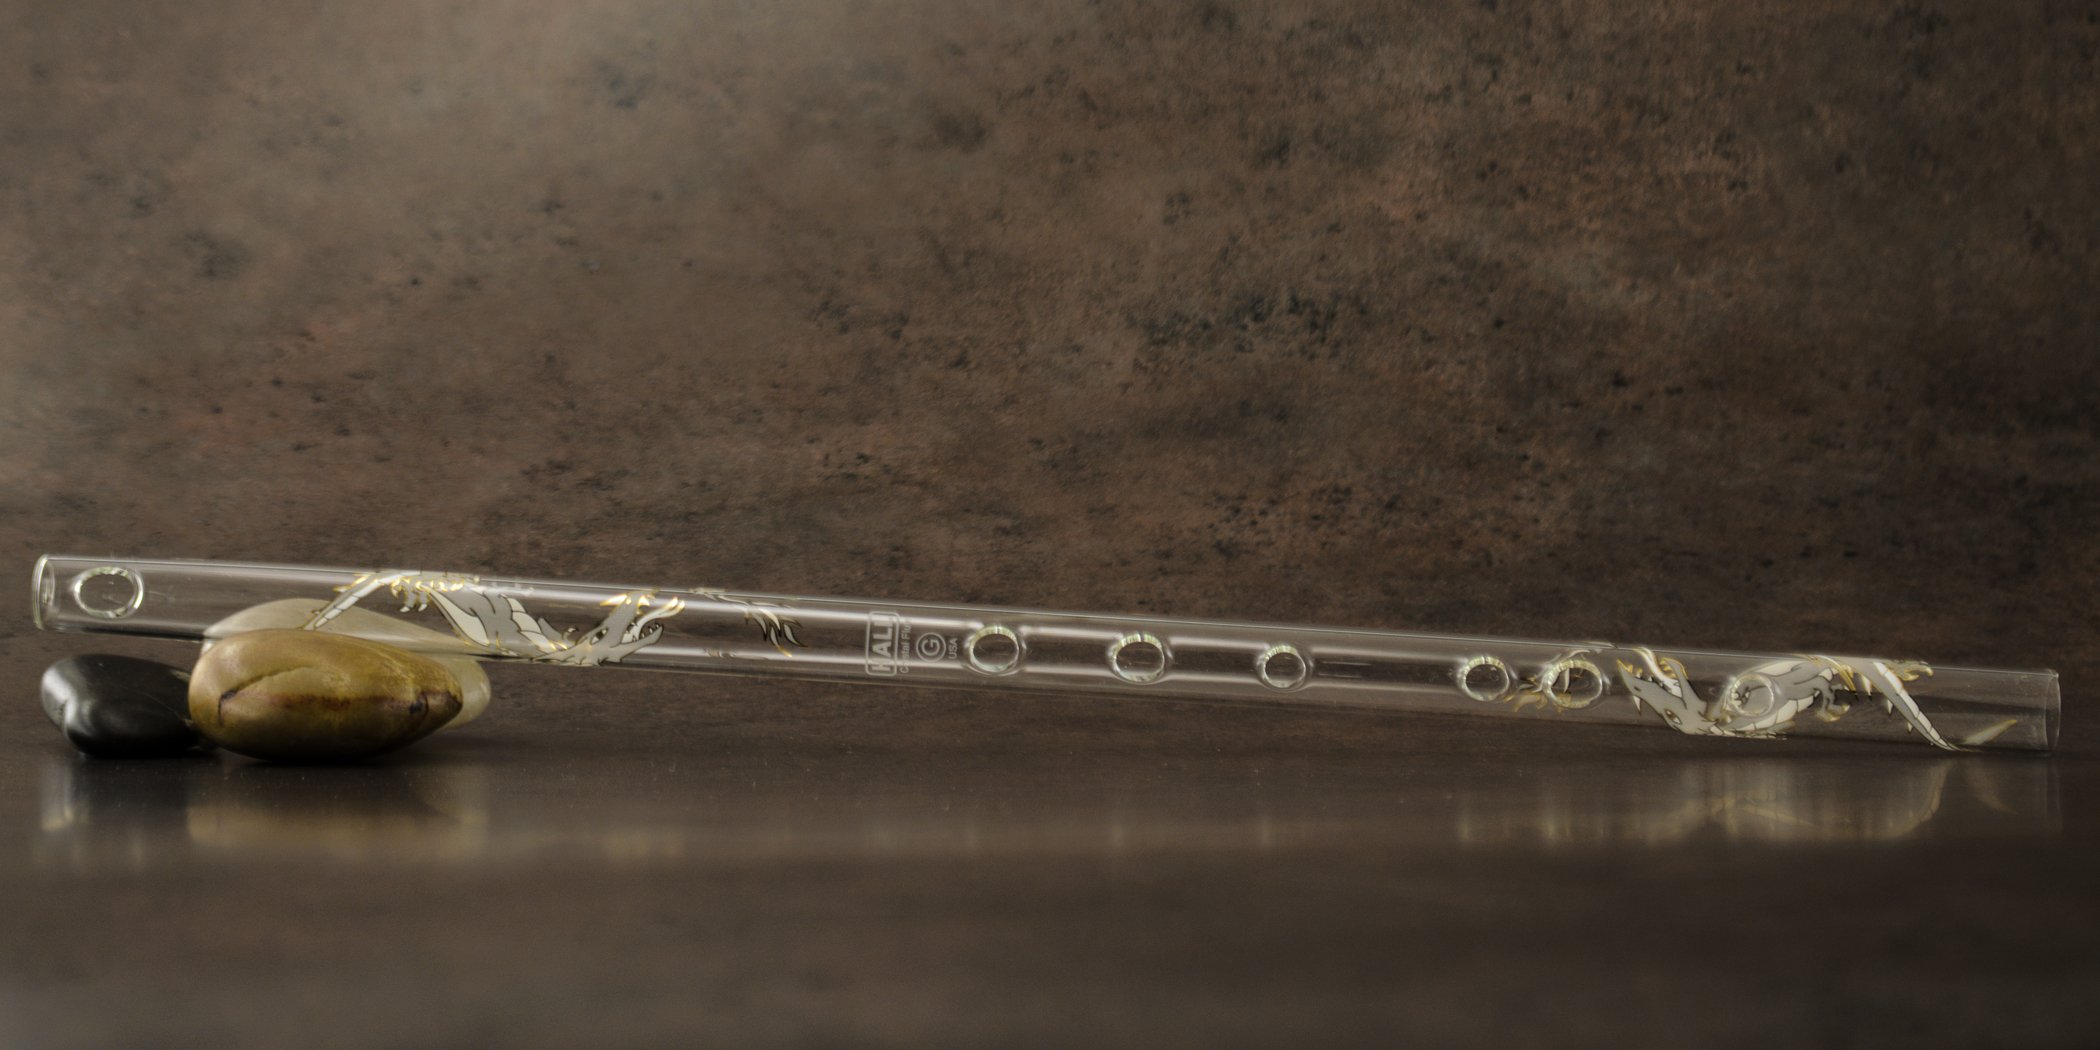 Hall Crystal Flute 11709 - Inline Glass Flute in G - White Dragon by Hall Crystal Flutes (Image #1)